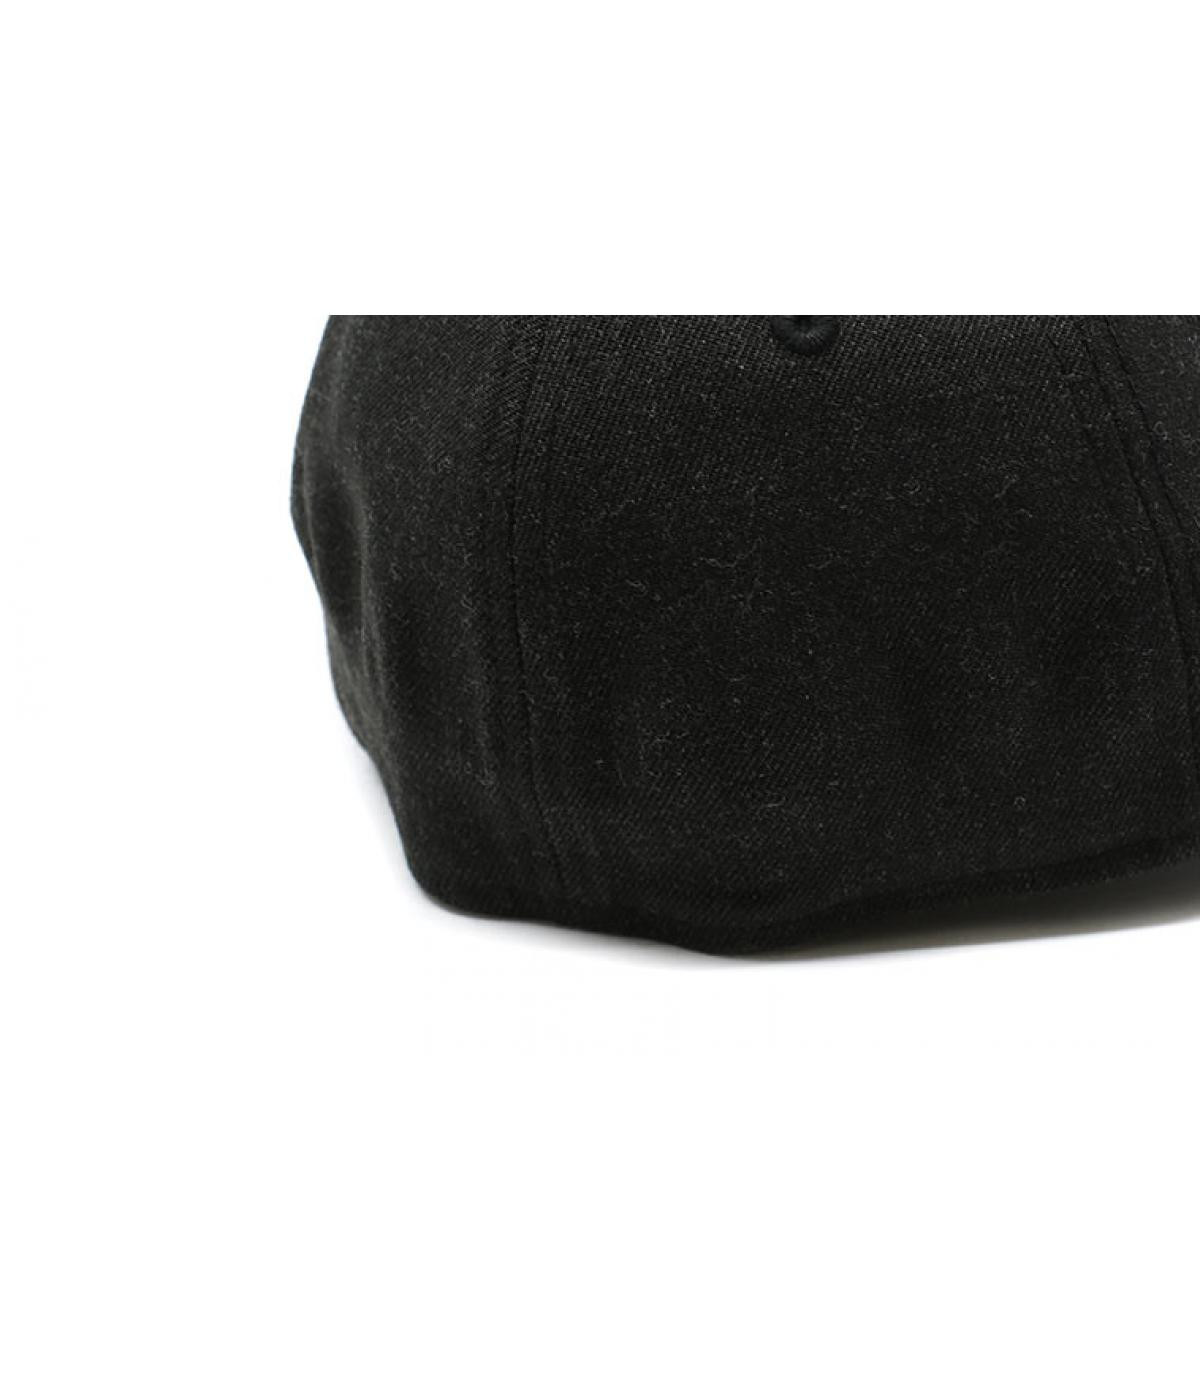 Détails Casquette MLB Heather 39Thirty NY black - image 5